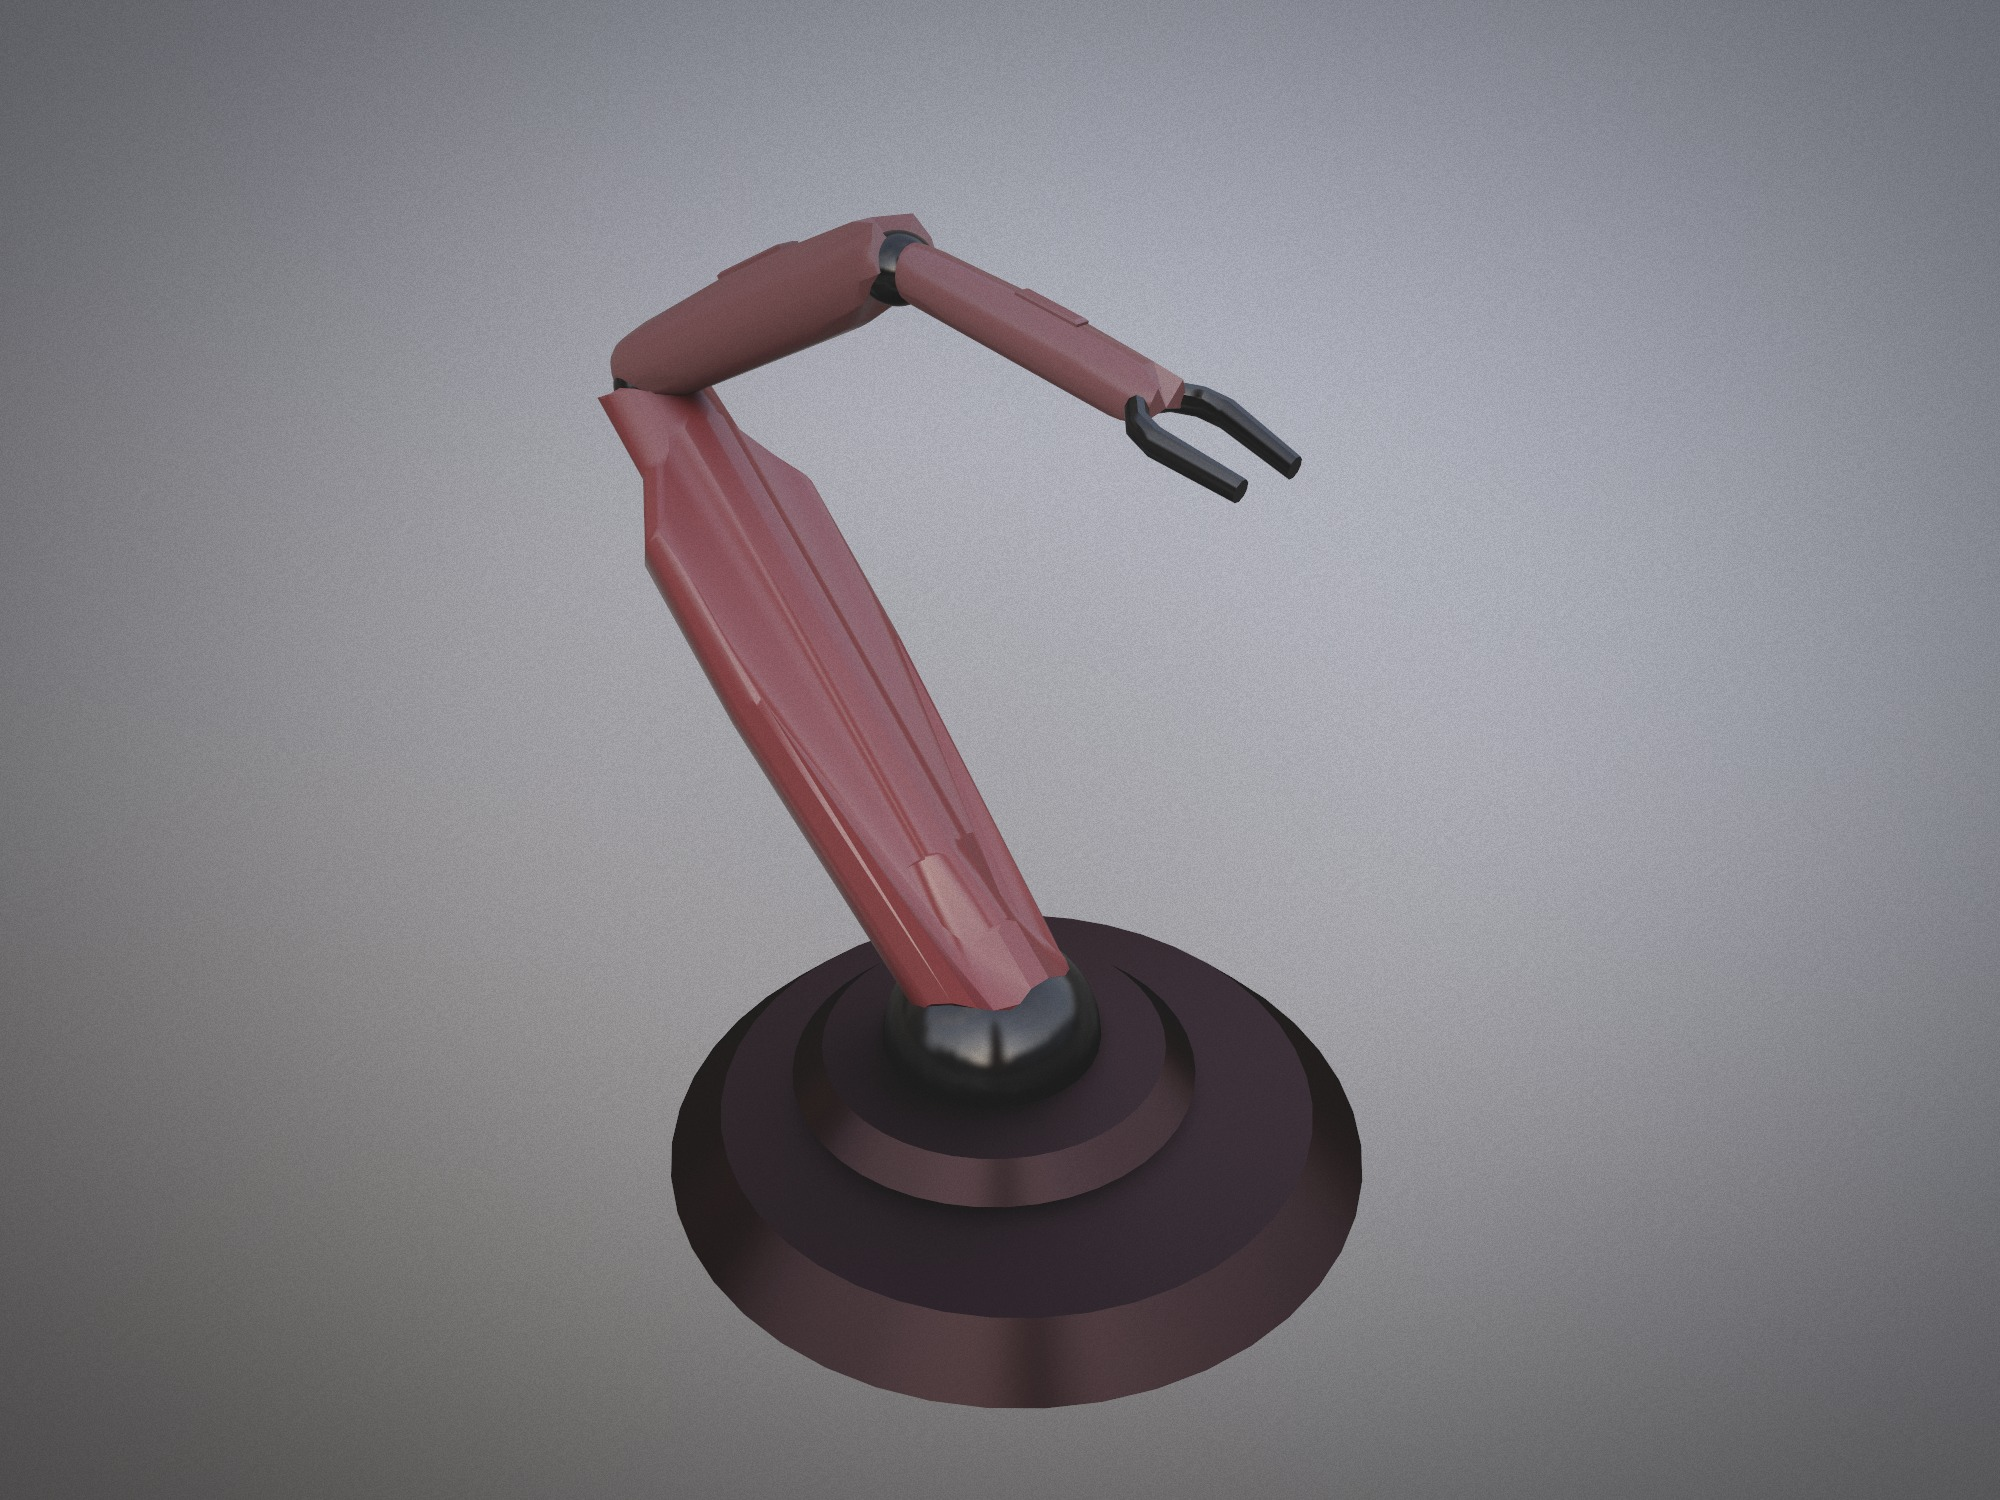 Robotic Arm Prototype 2  - 3D design by Mr_John on Oct 2, 2018